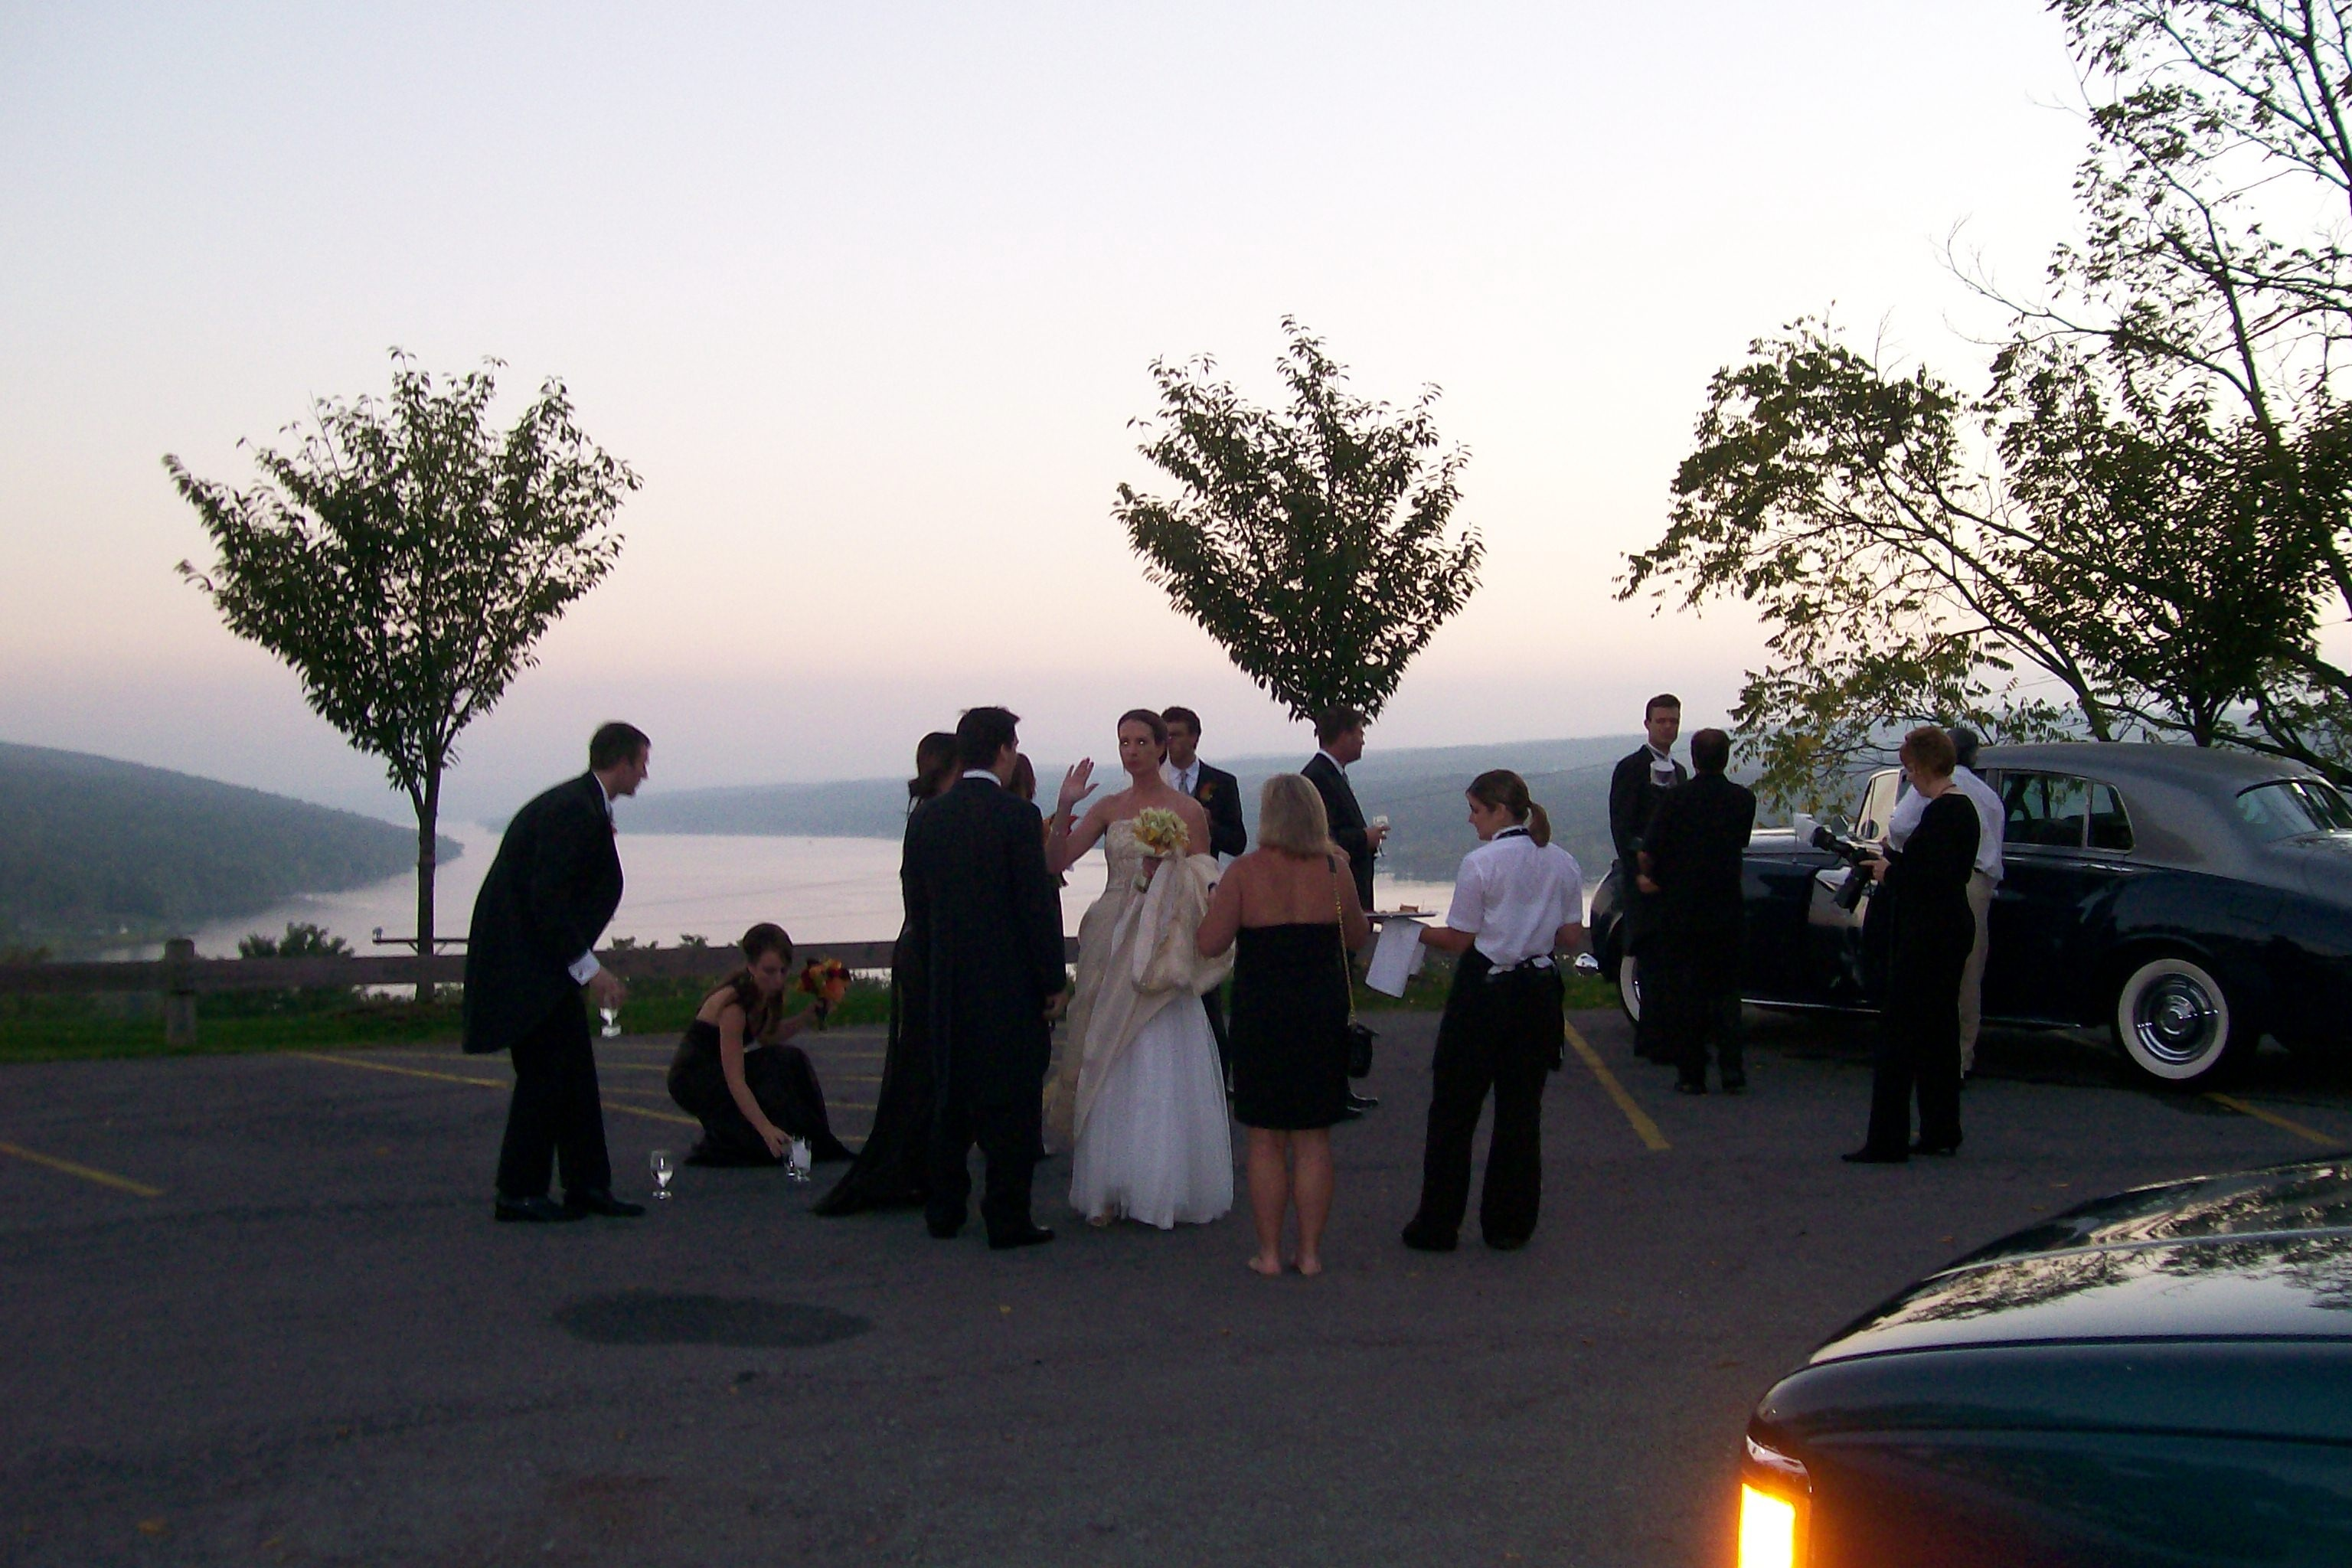 Reception, Flowers & Decor, Cakes, cake, Bride Bouquets, Groomsmen, Bride, Flowers, Wedding, Bridal, Cutting, Rolls, Sunset, Friends, Wine, Royce